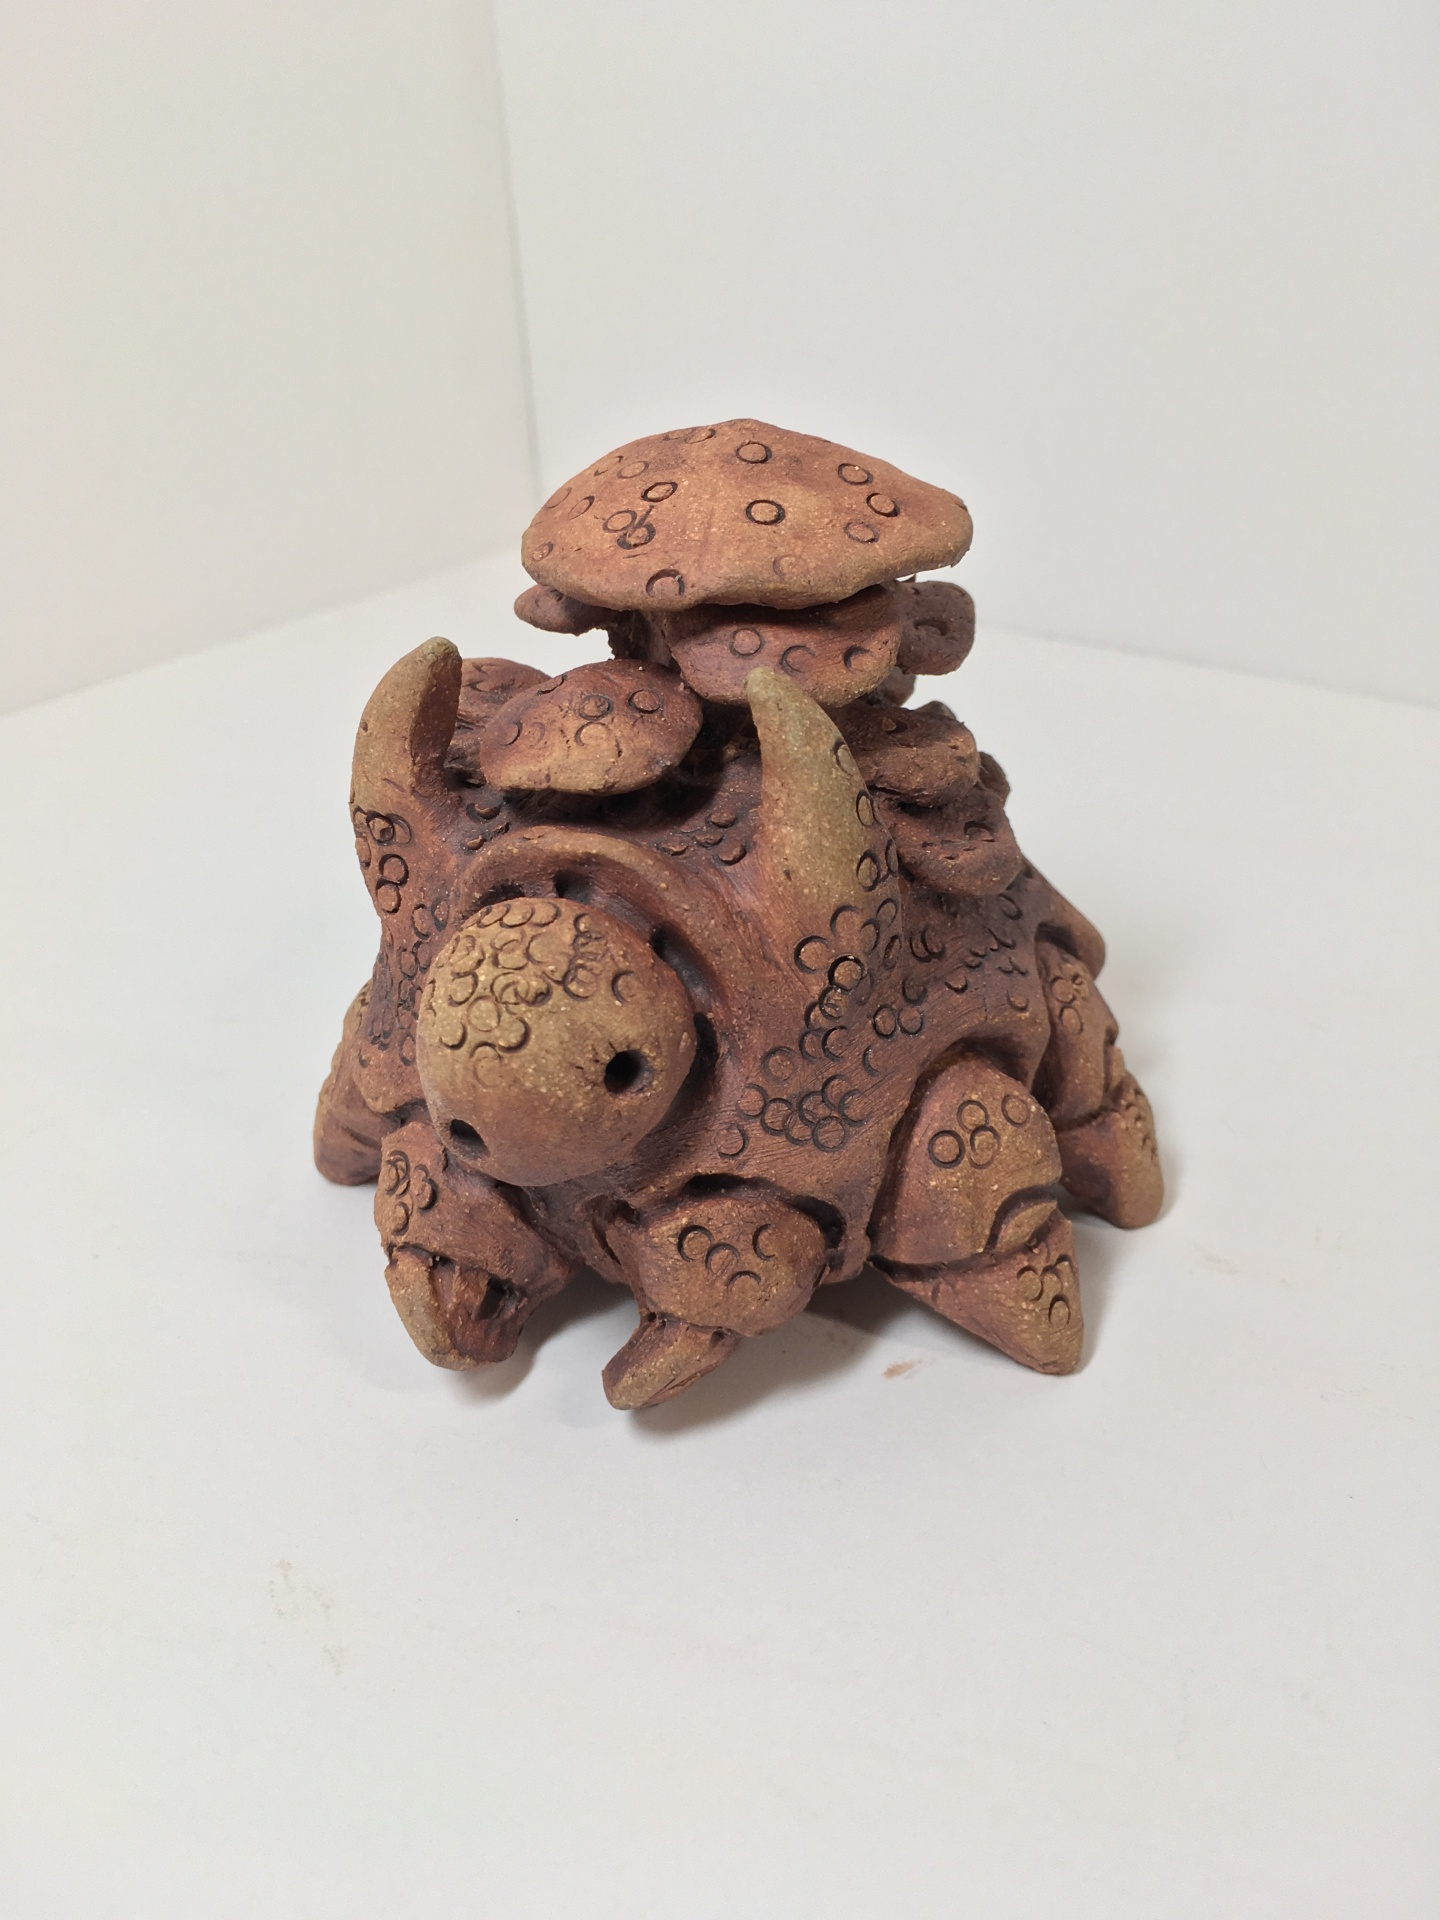 handmade pottery sculpture, by zack rudy, fantasy creature, science fiction creature, stoneware clay, mystic realm